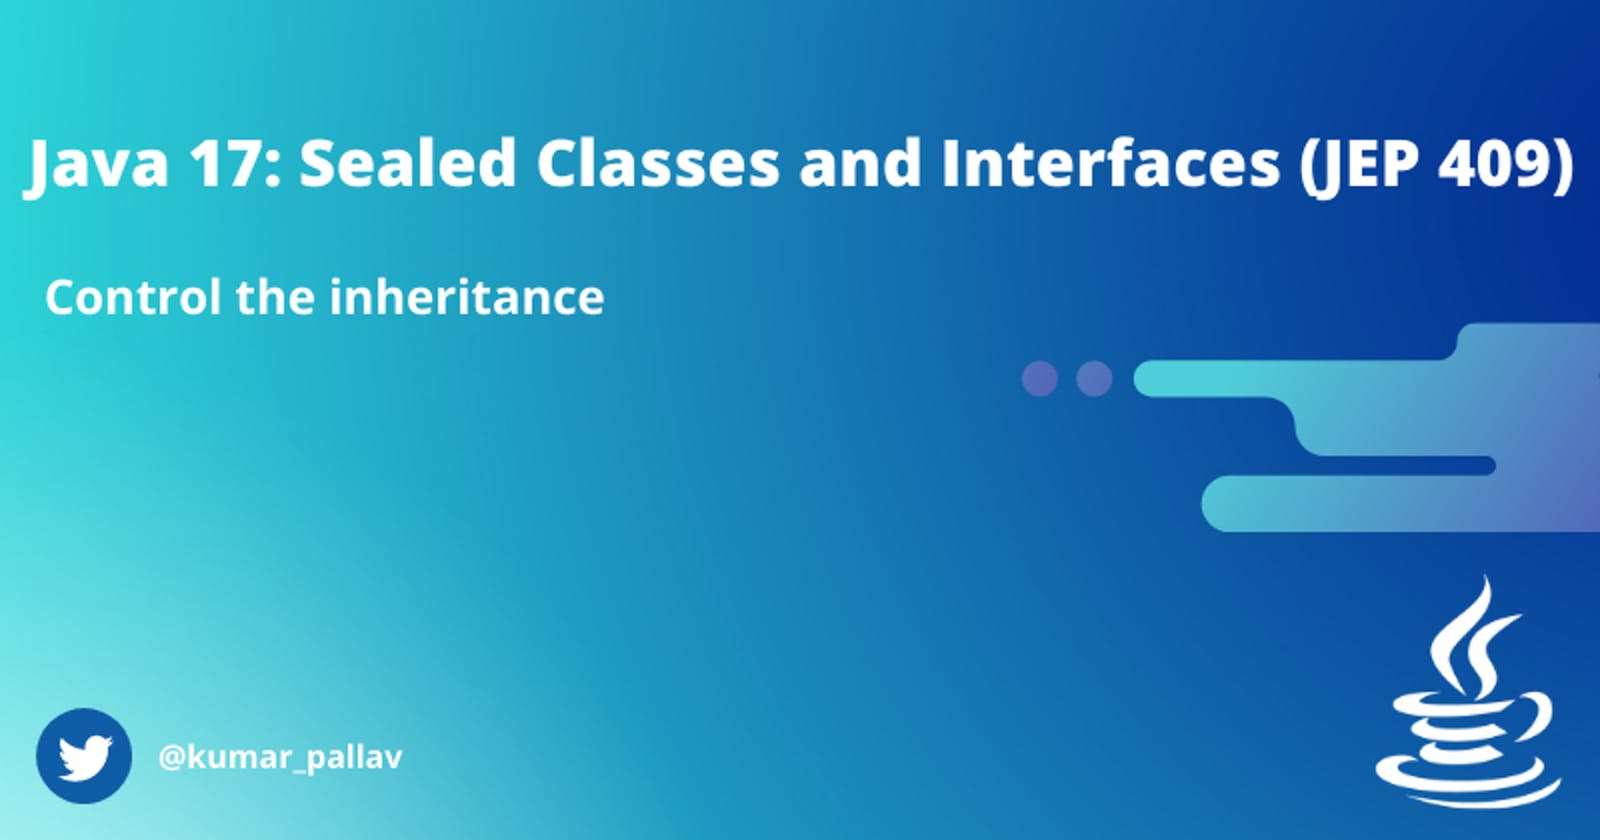 Java 17: Sealed Classes and Interfaces (JEP 409)